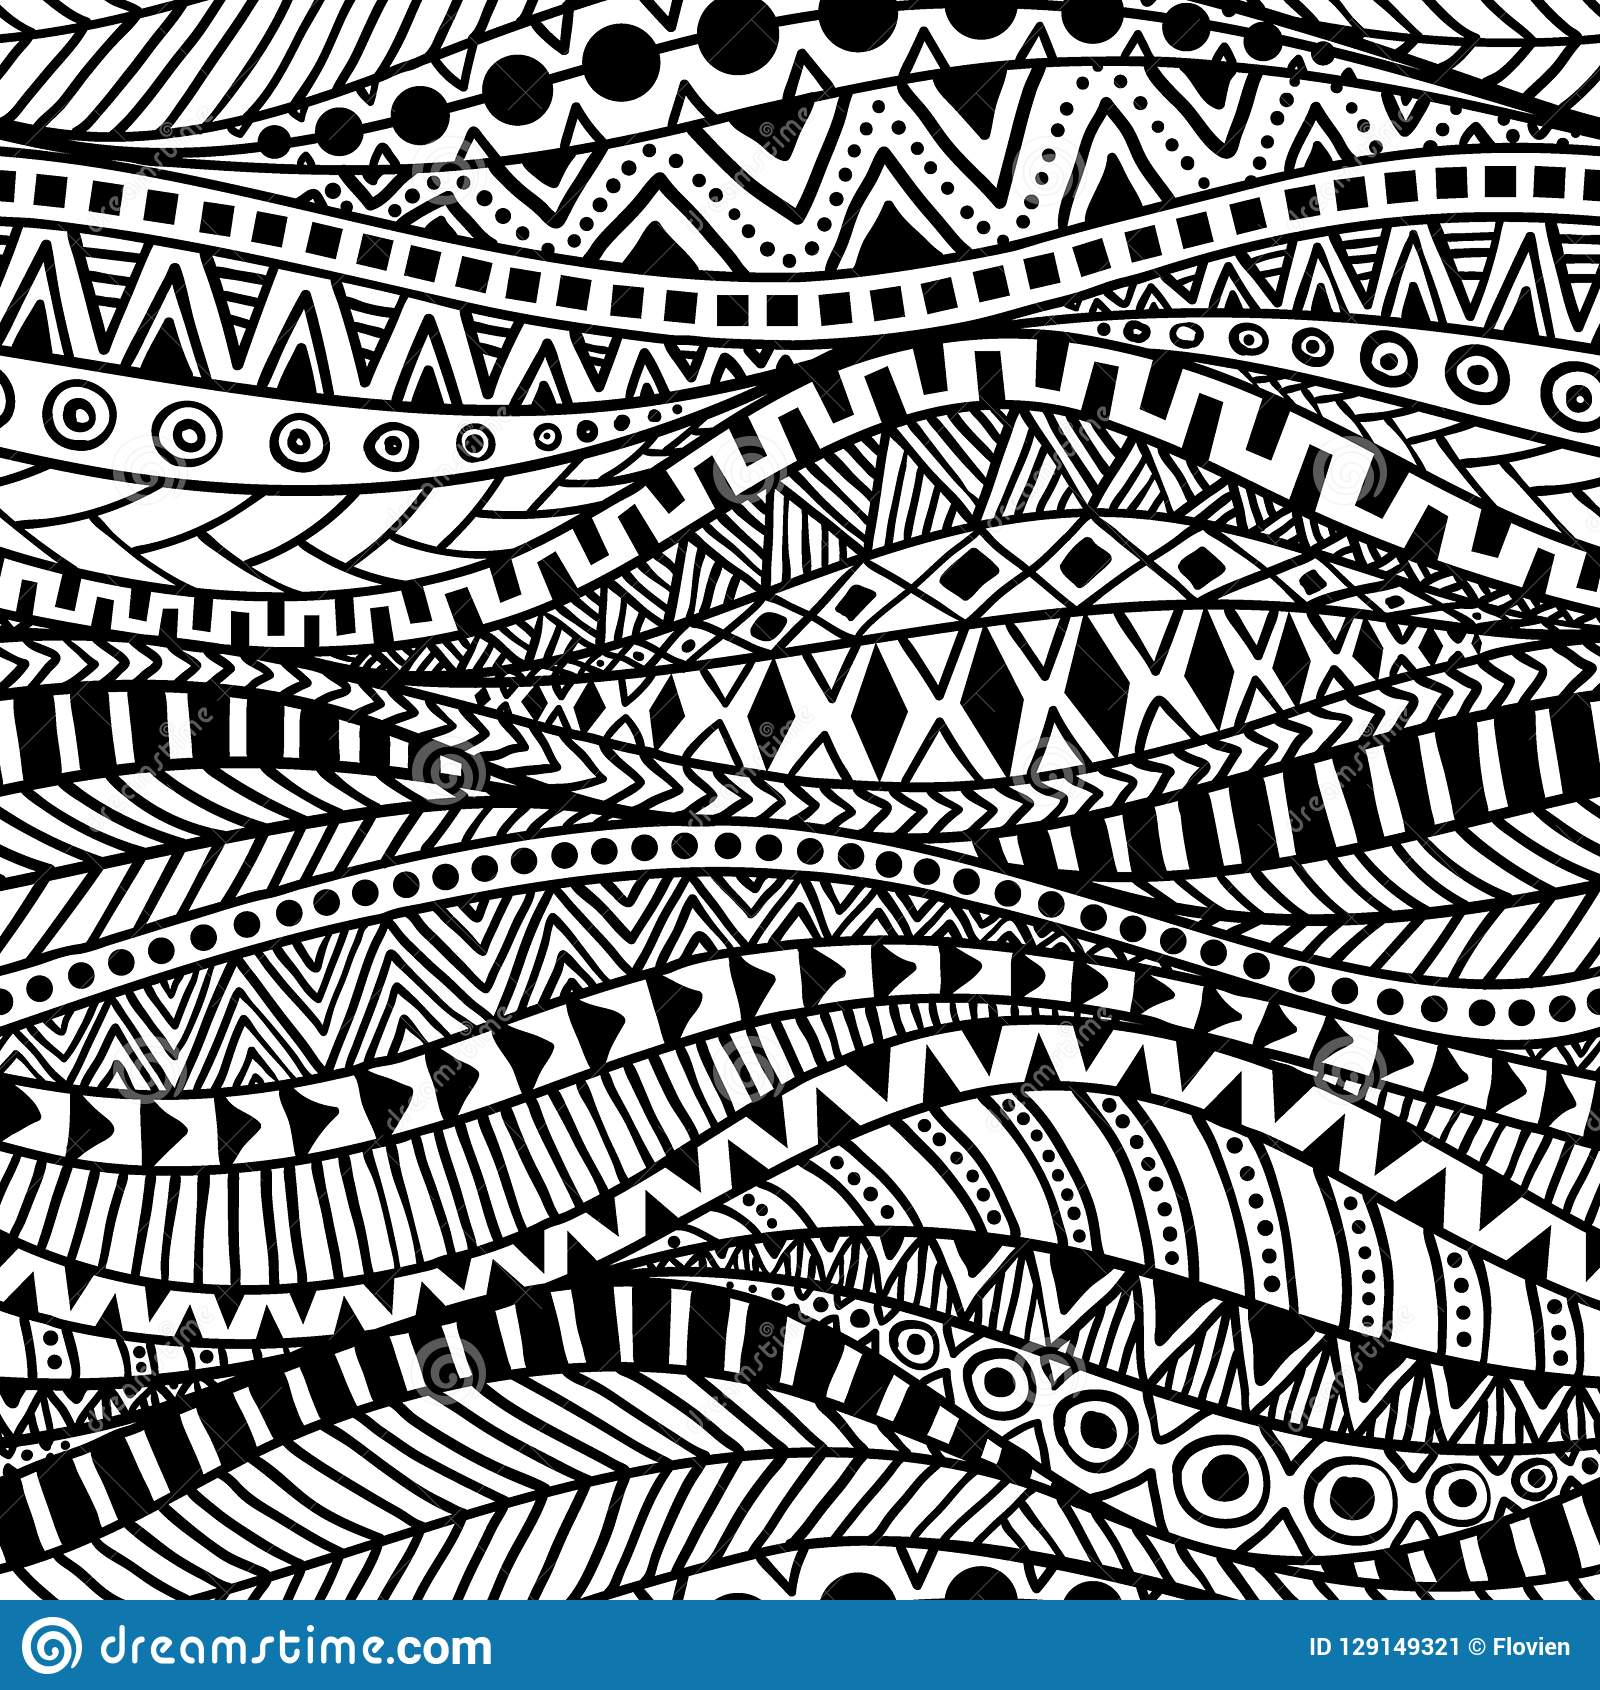 Wavy Seamless Ethnic Pattern Black And White Print For